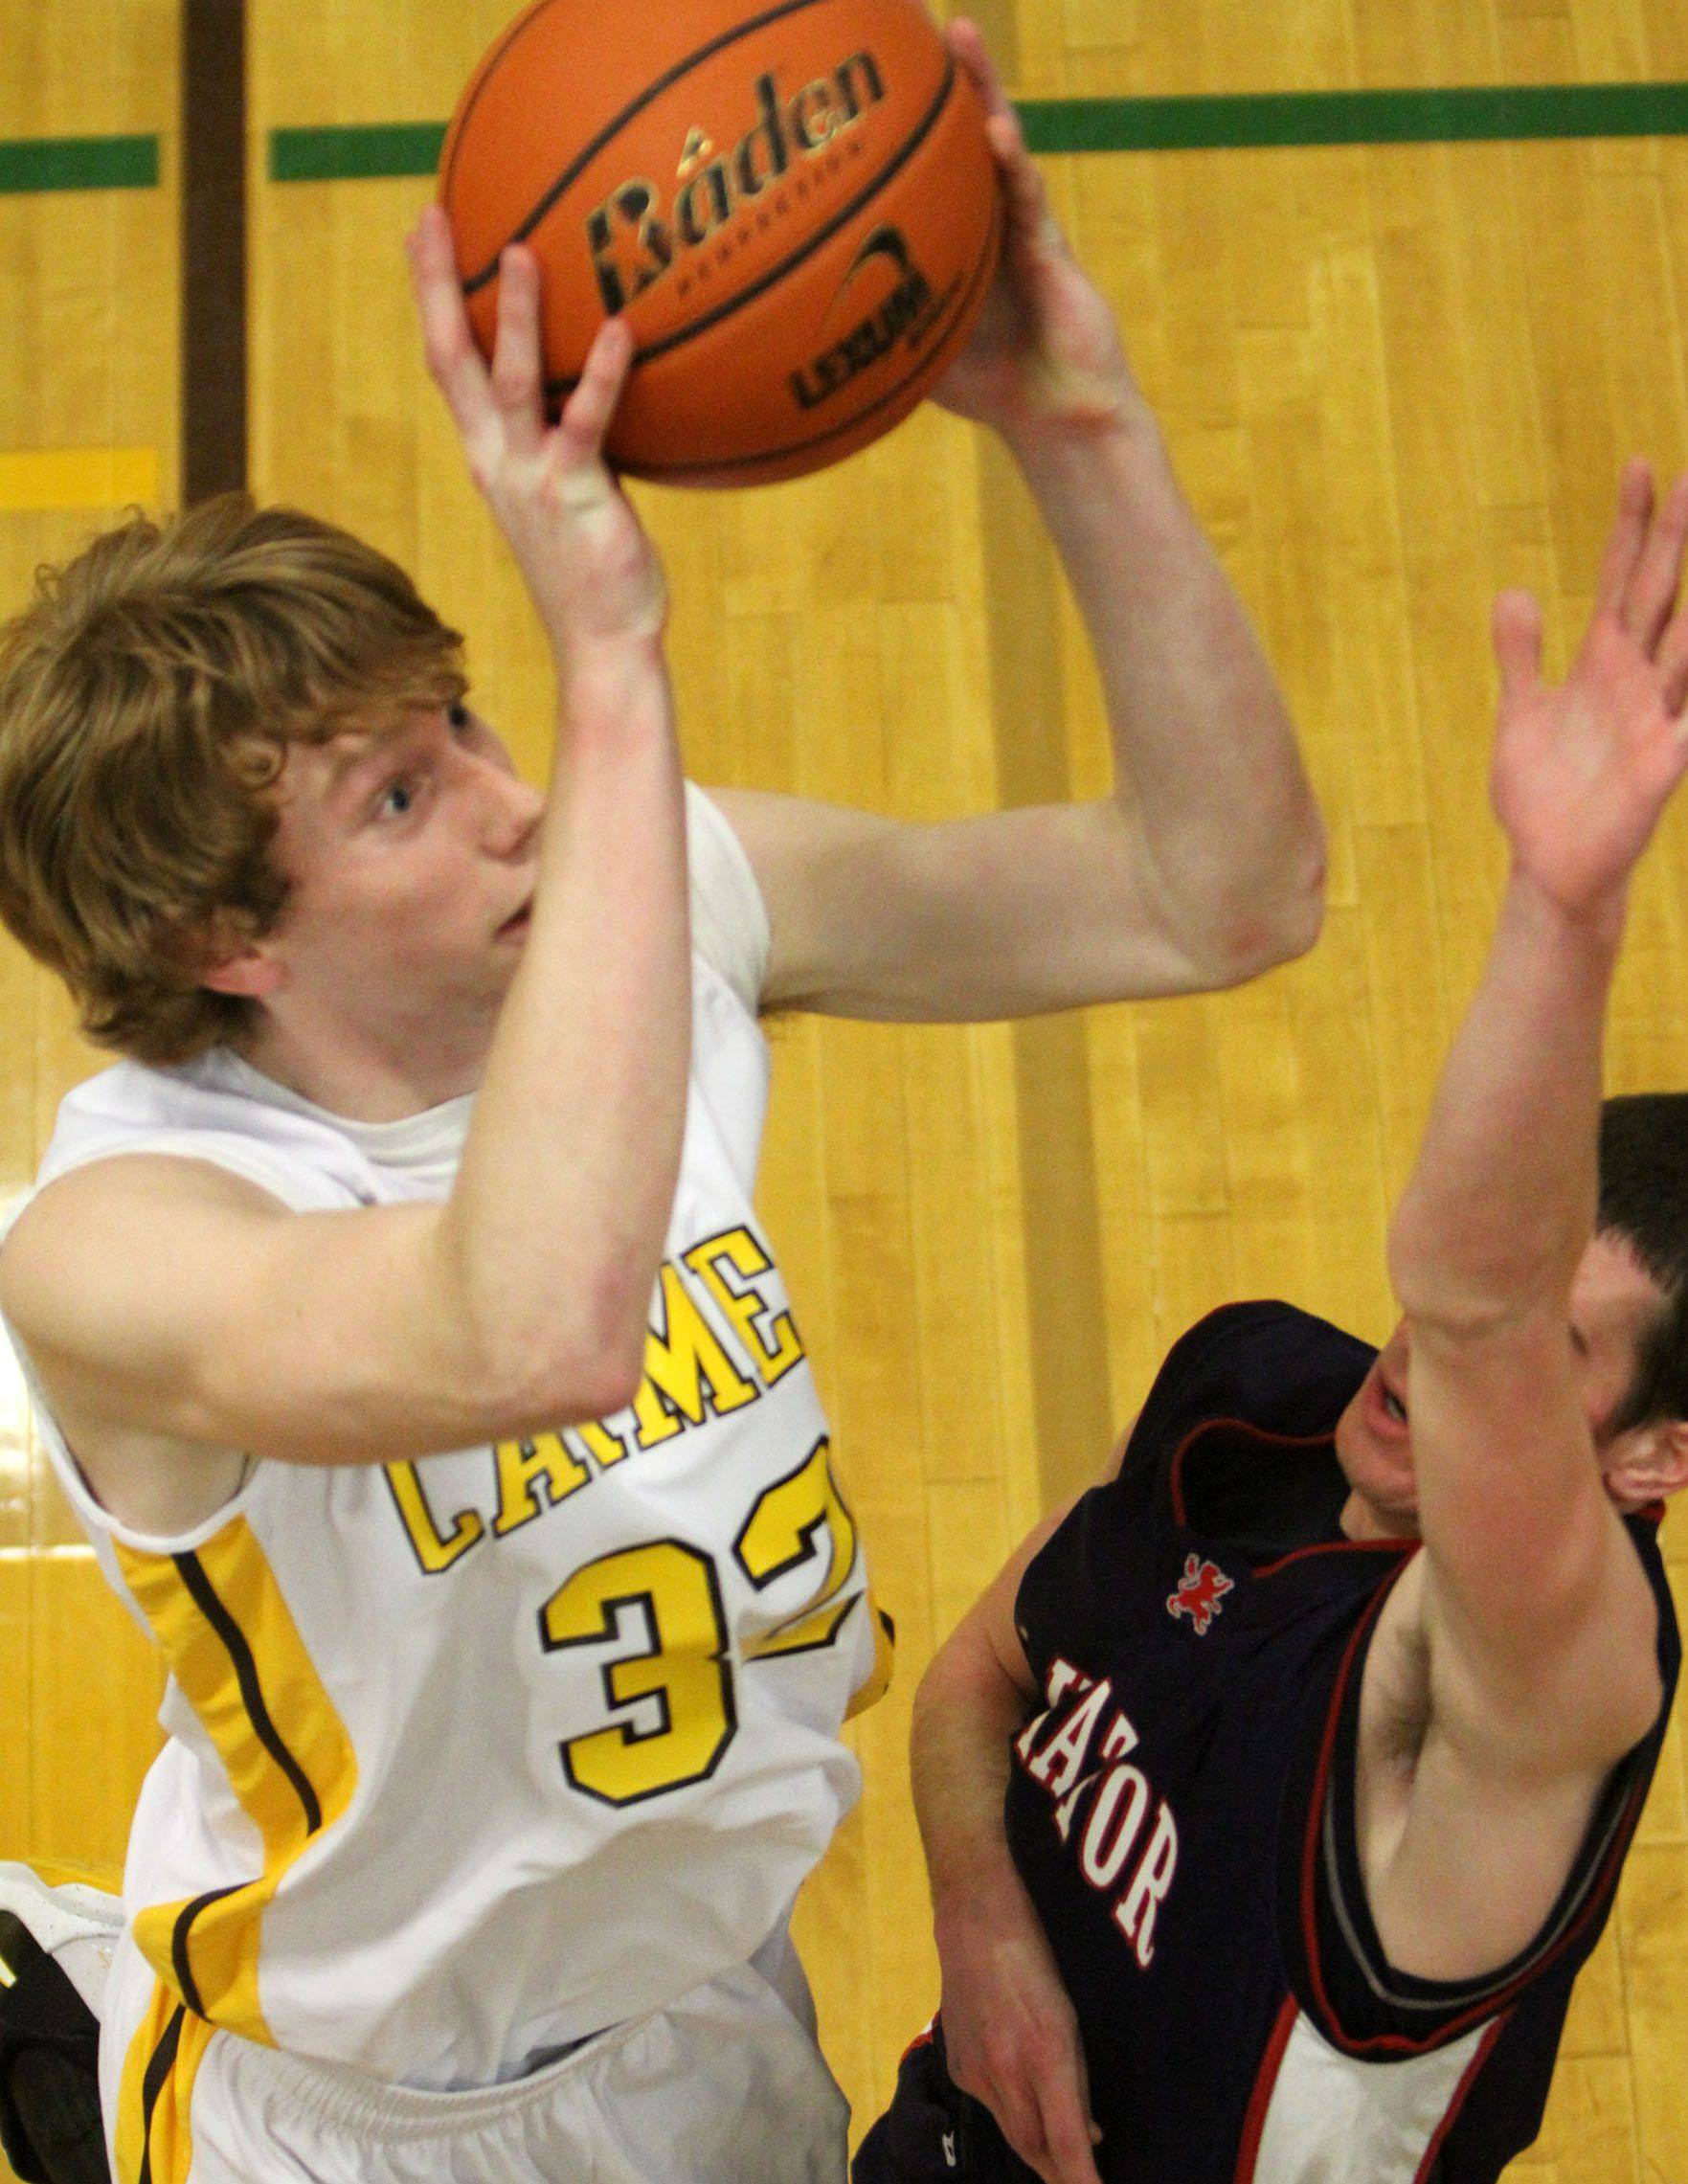 Carmel's Brandon Motzel shoots from under the basket against Danny Forde.